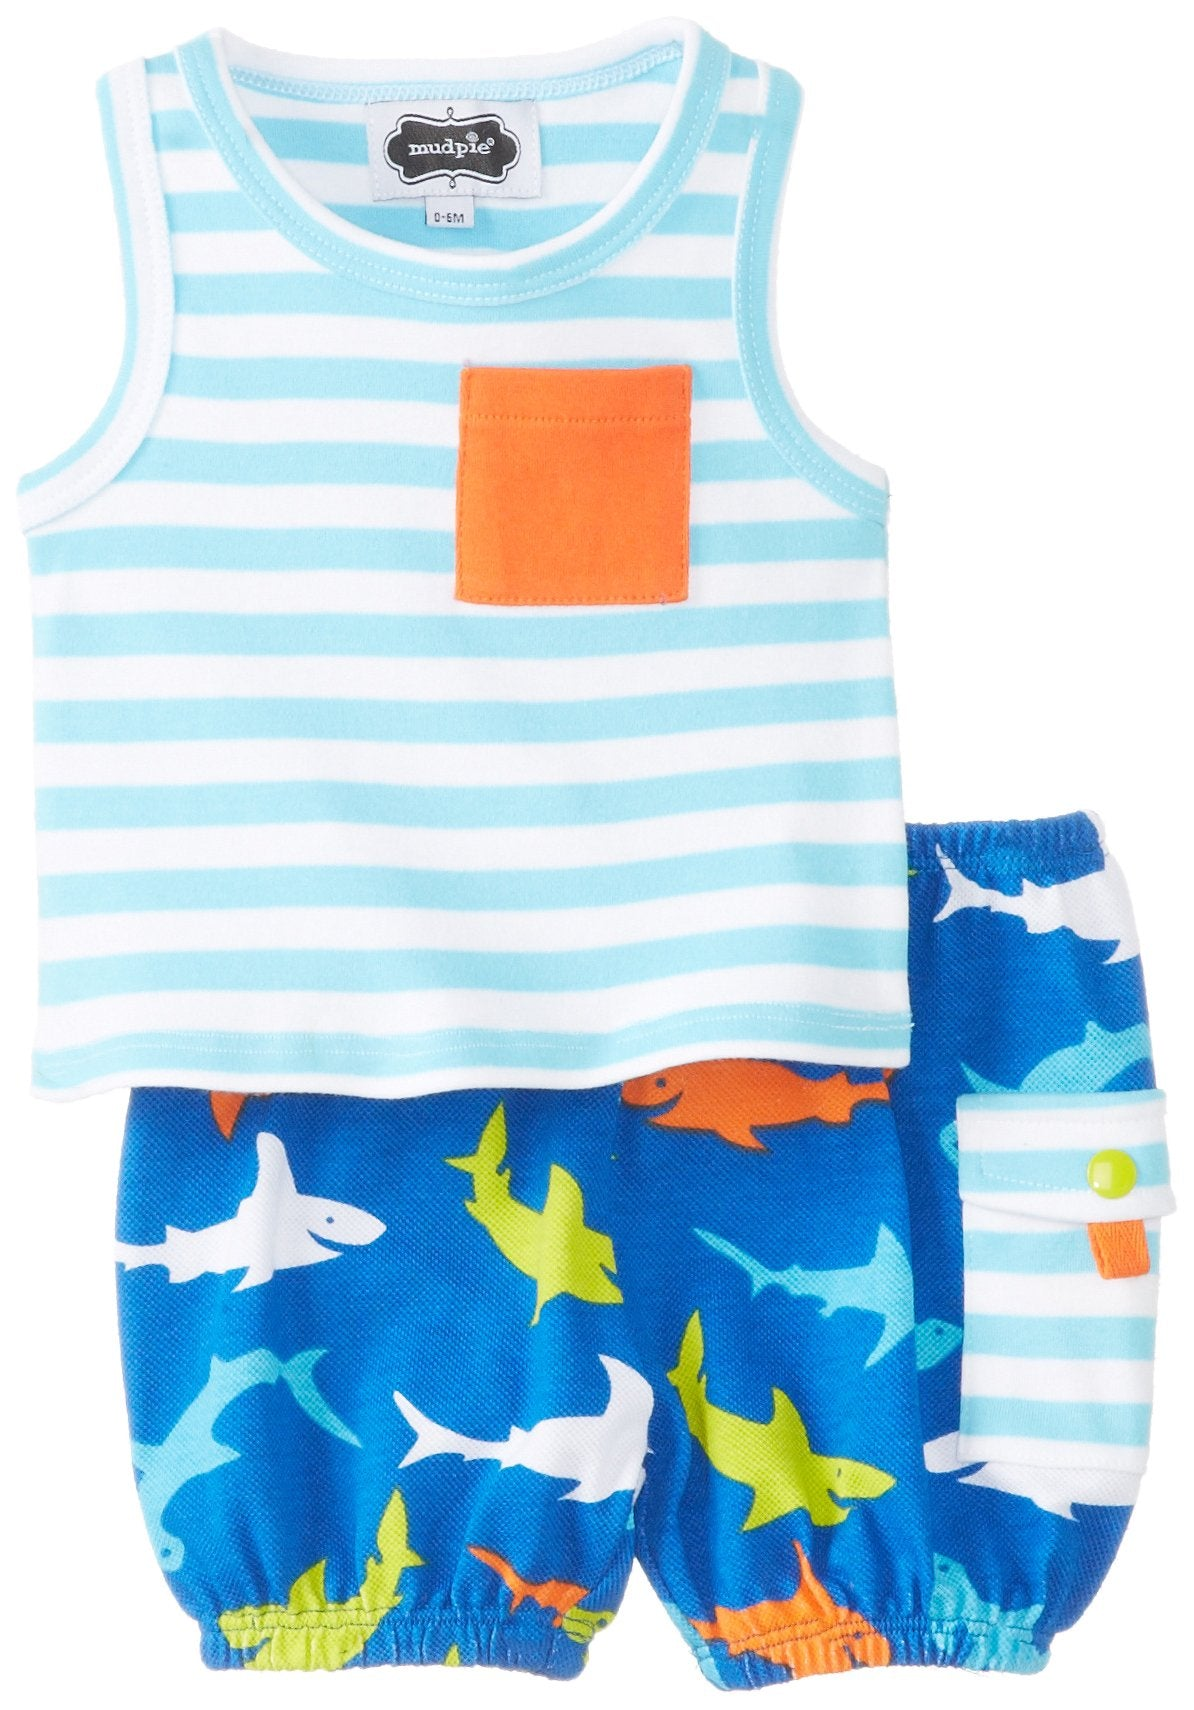 Mud Pie Boys' Baby Newborn Shark Tank and Diaper Cover Set, Multi, 0-6 Months